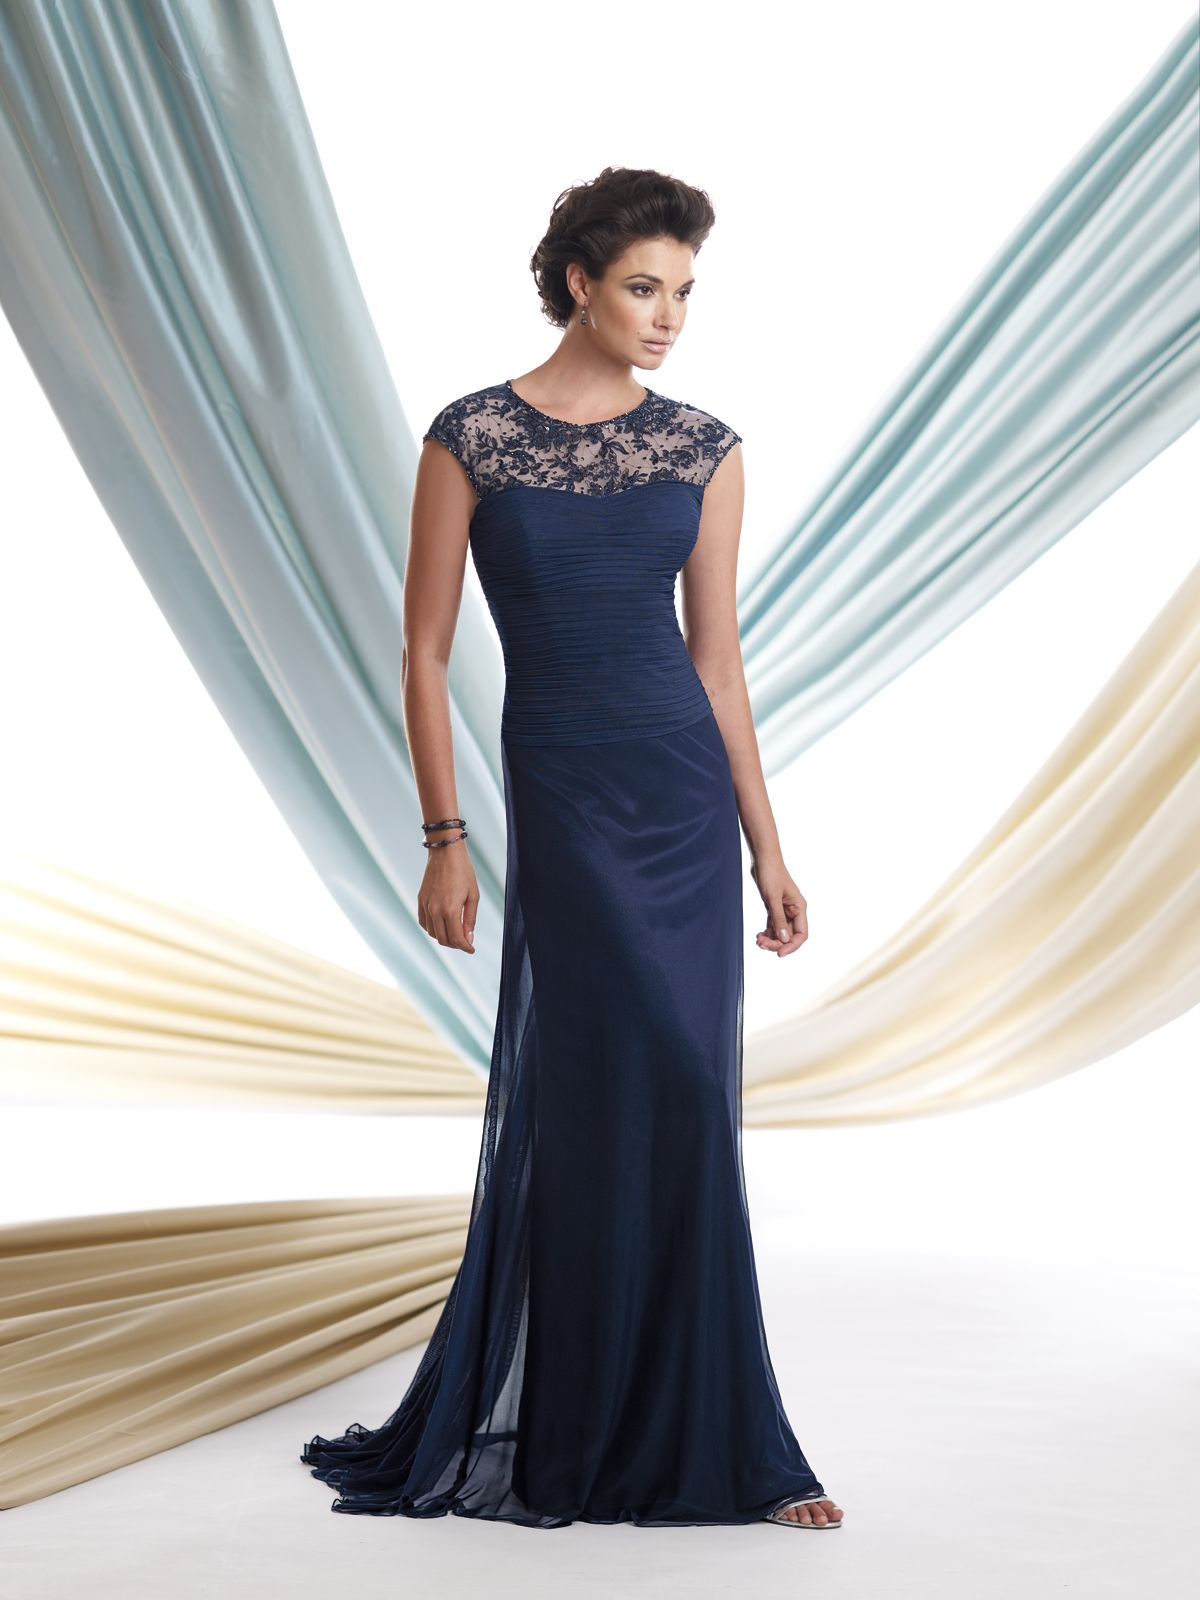 Stores Selling Montage Formal Dresses